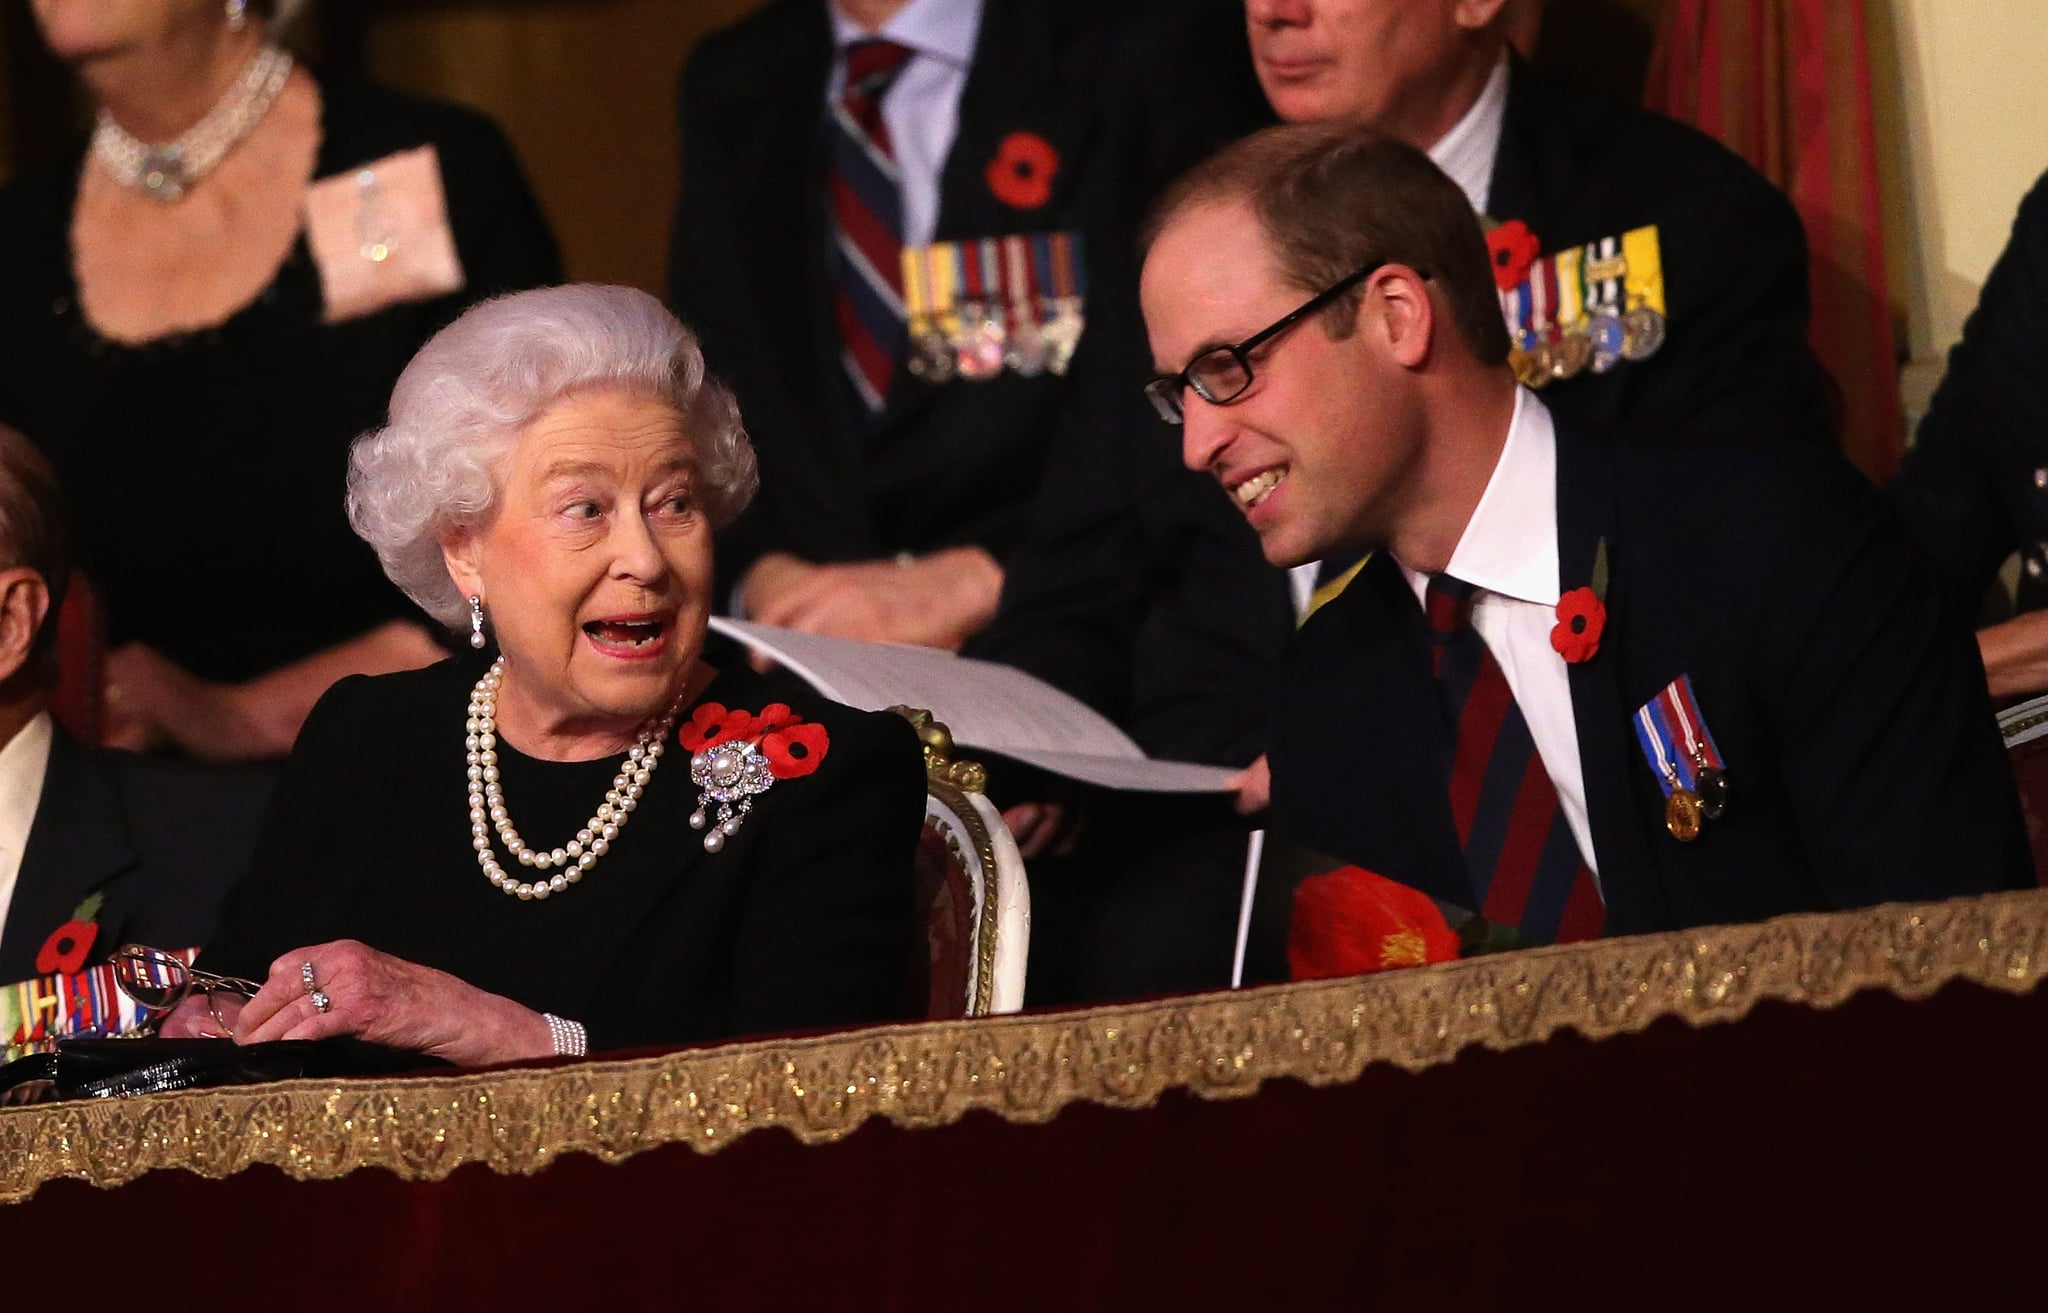 Queen Elizabeth's Wedding Rings Have a Lot of Family History — Here's Their Story